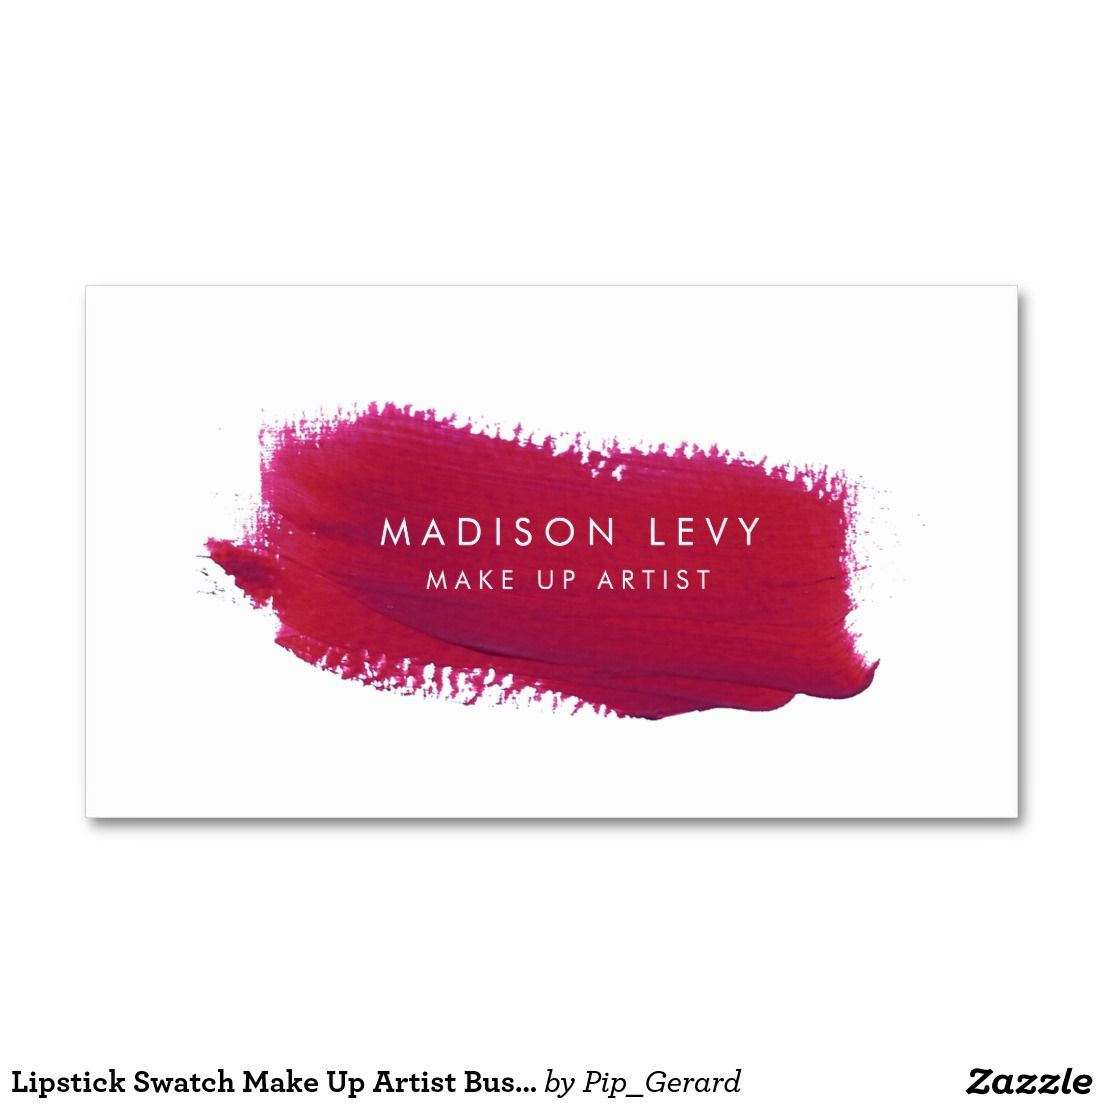 Lipstick swatch make up artist business cards business cards lipstick swatch make up artist business cards magicingreecefo Image collections